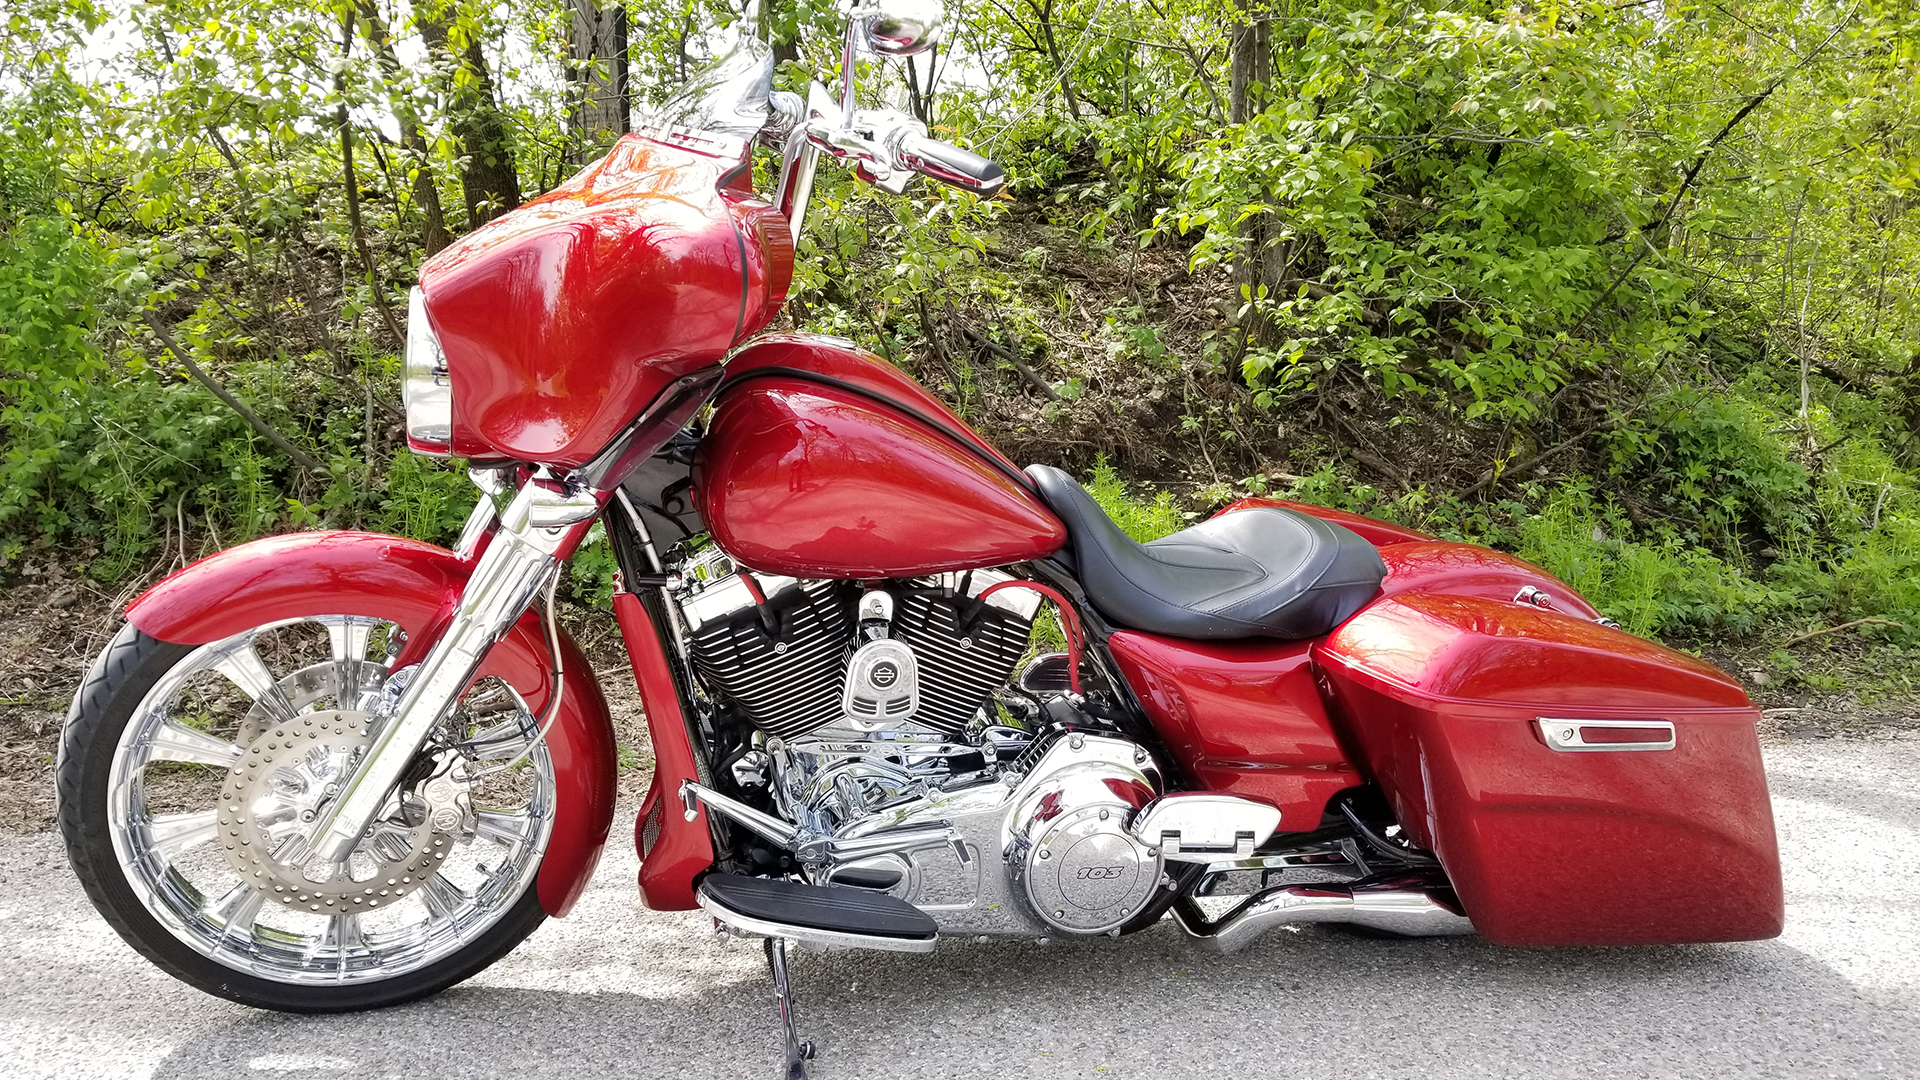 2012 Harley Davidson Street Glide Dennis Kirk Garage Build Red